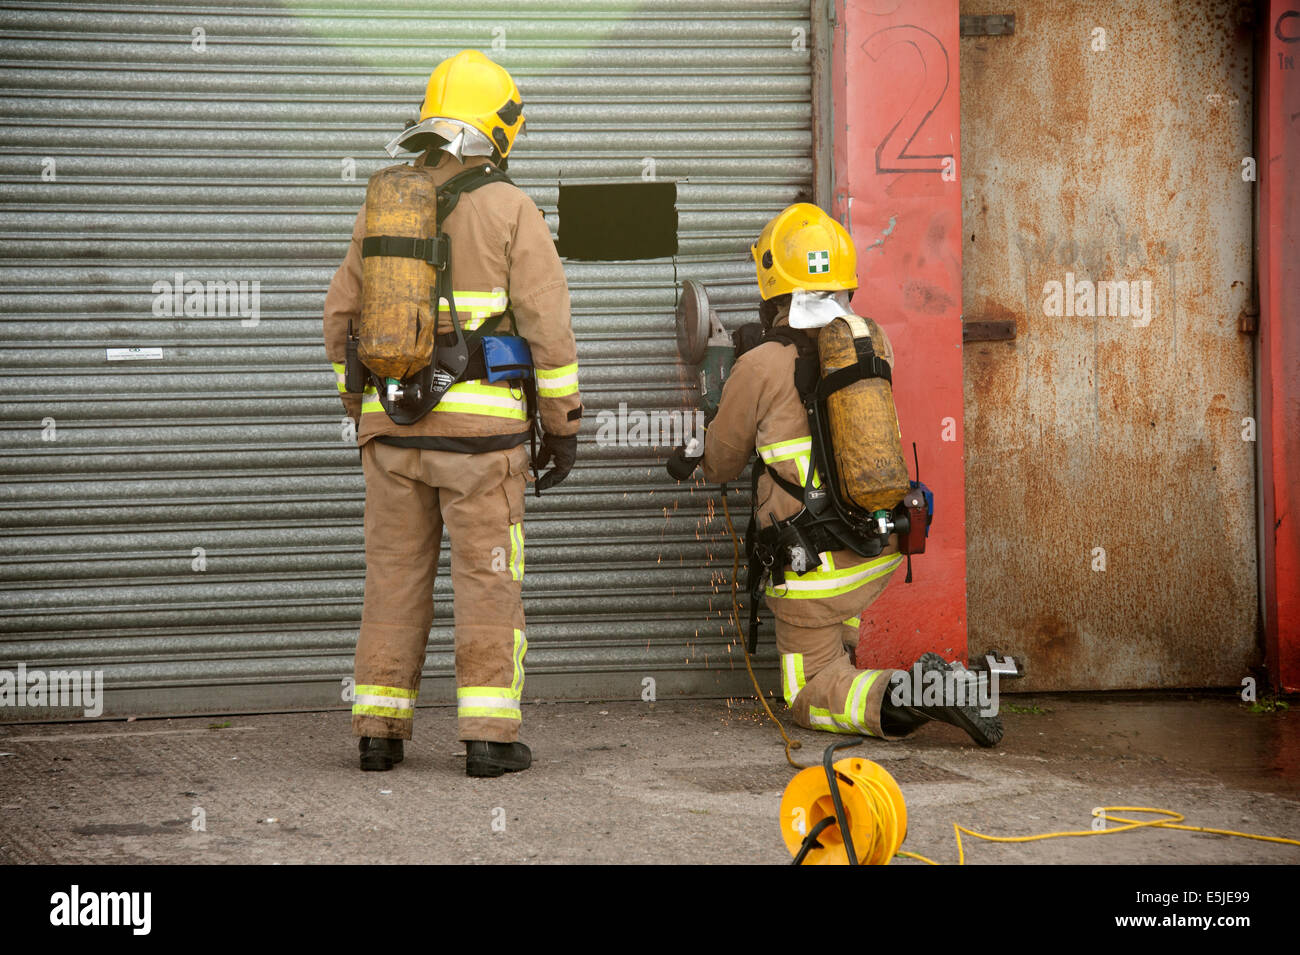 Firefighters Cutting Roller Shutter Angle Grinder Gain Access - Stock Image